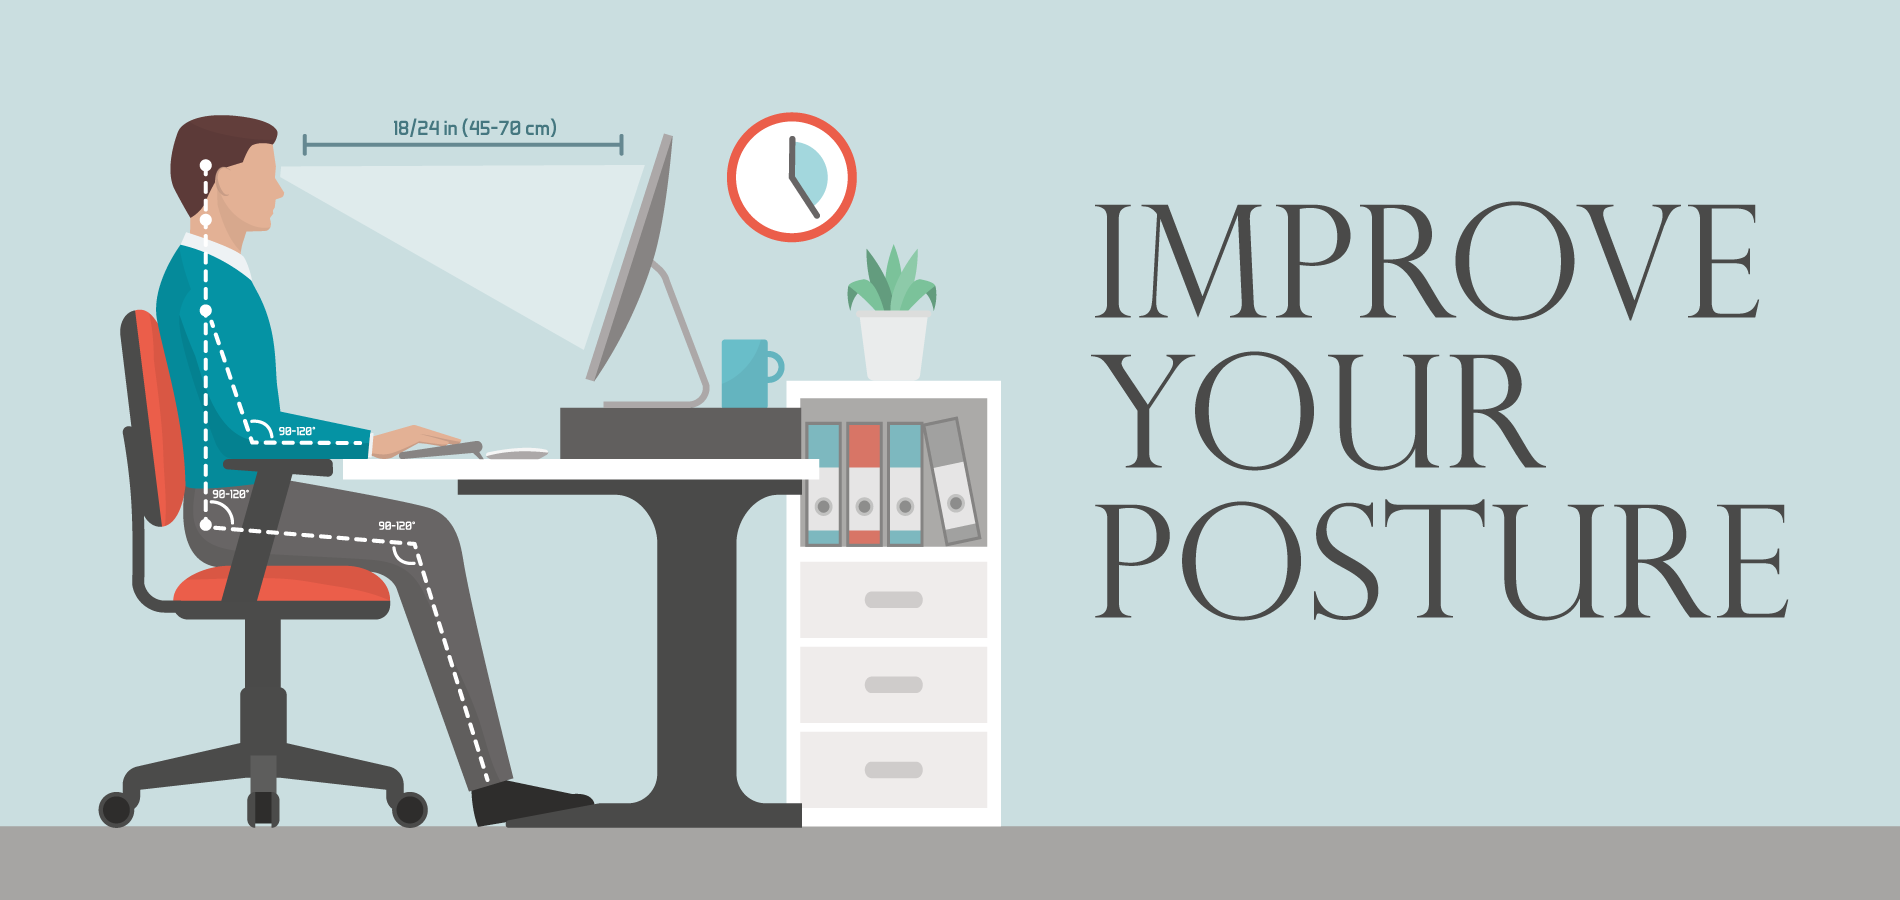 take these small tips to improve your posture in the office